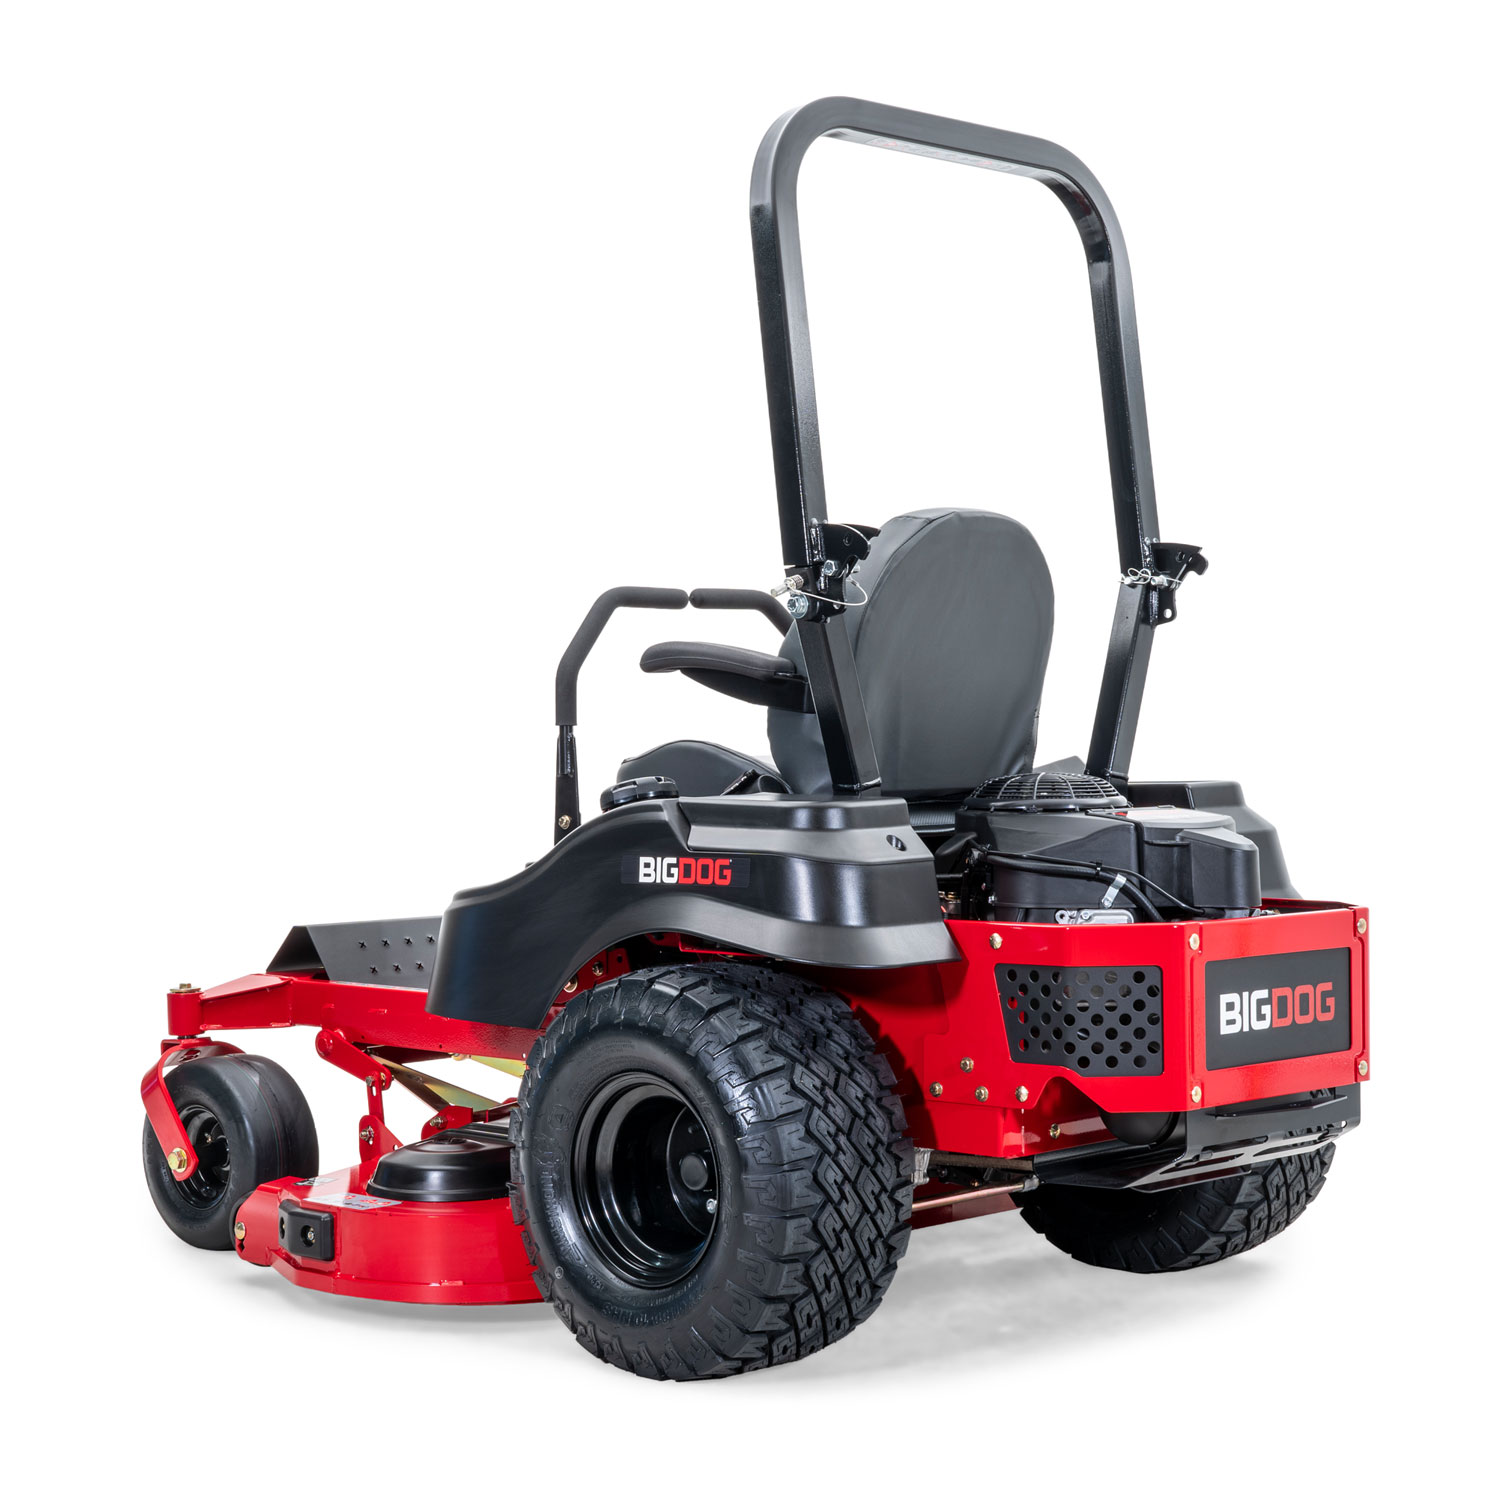 Image of rear 3 quarters of a red zero-turn mower showing the trim edge of the deck